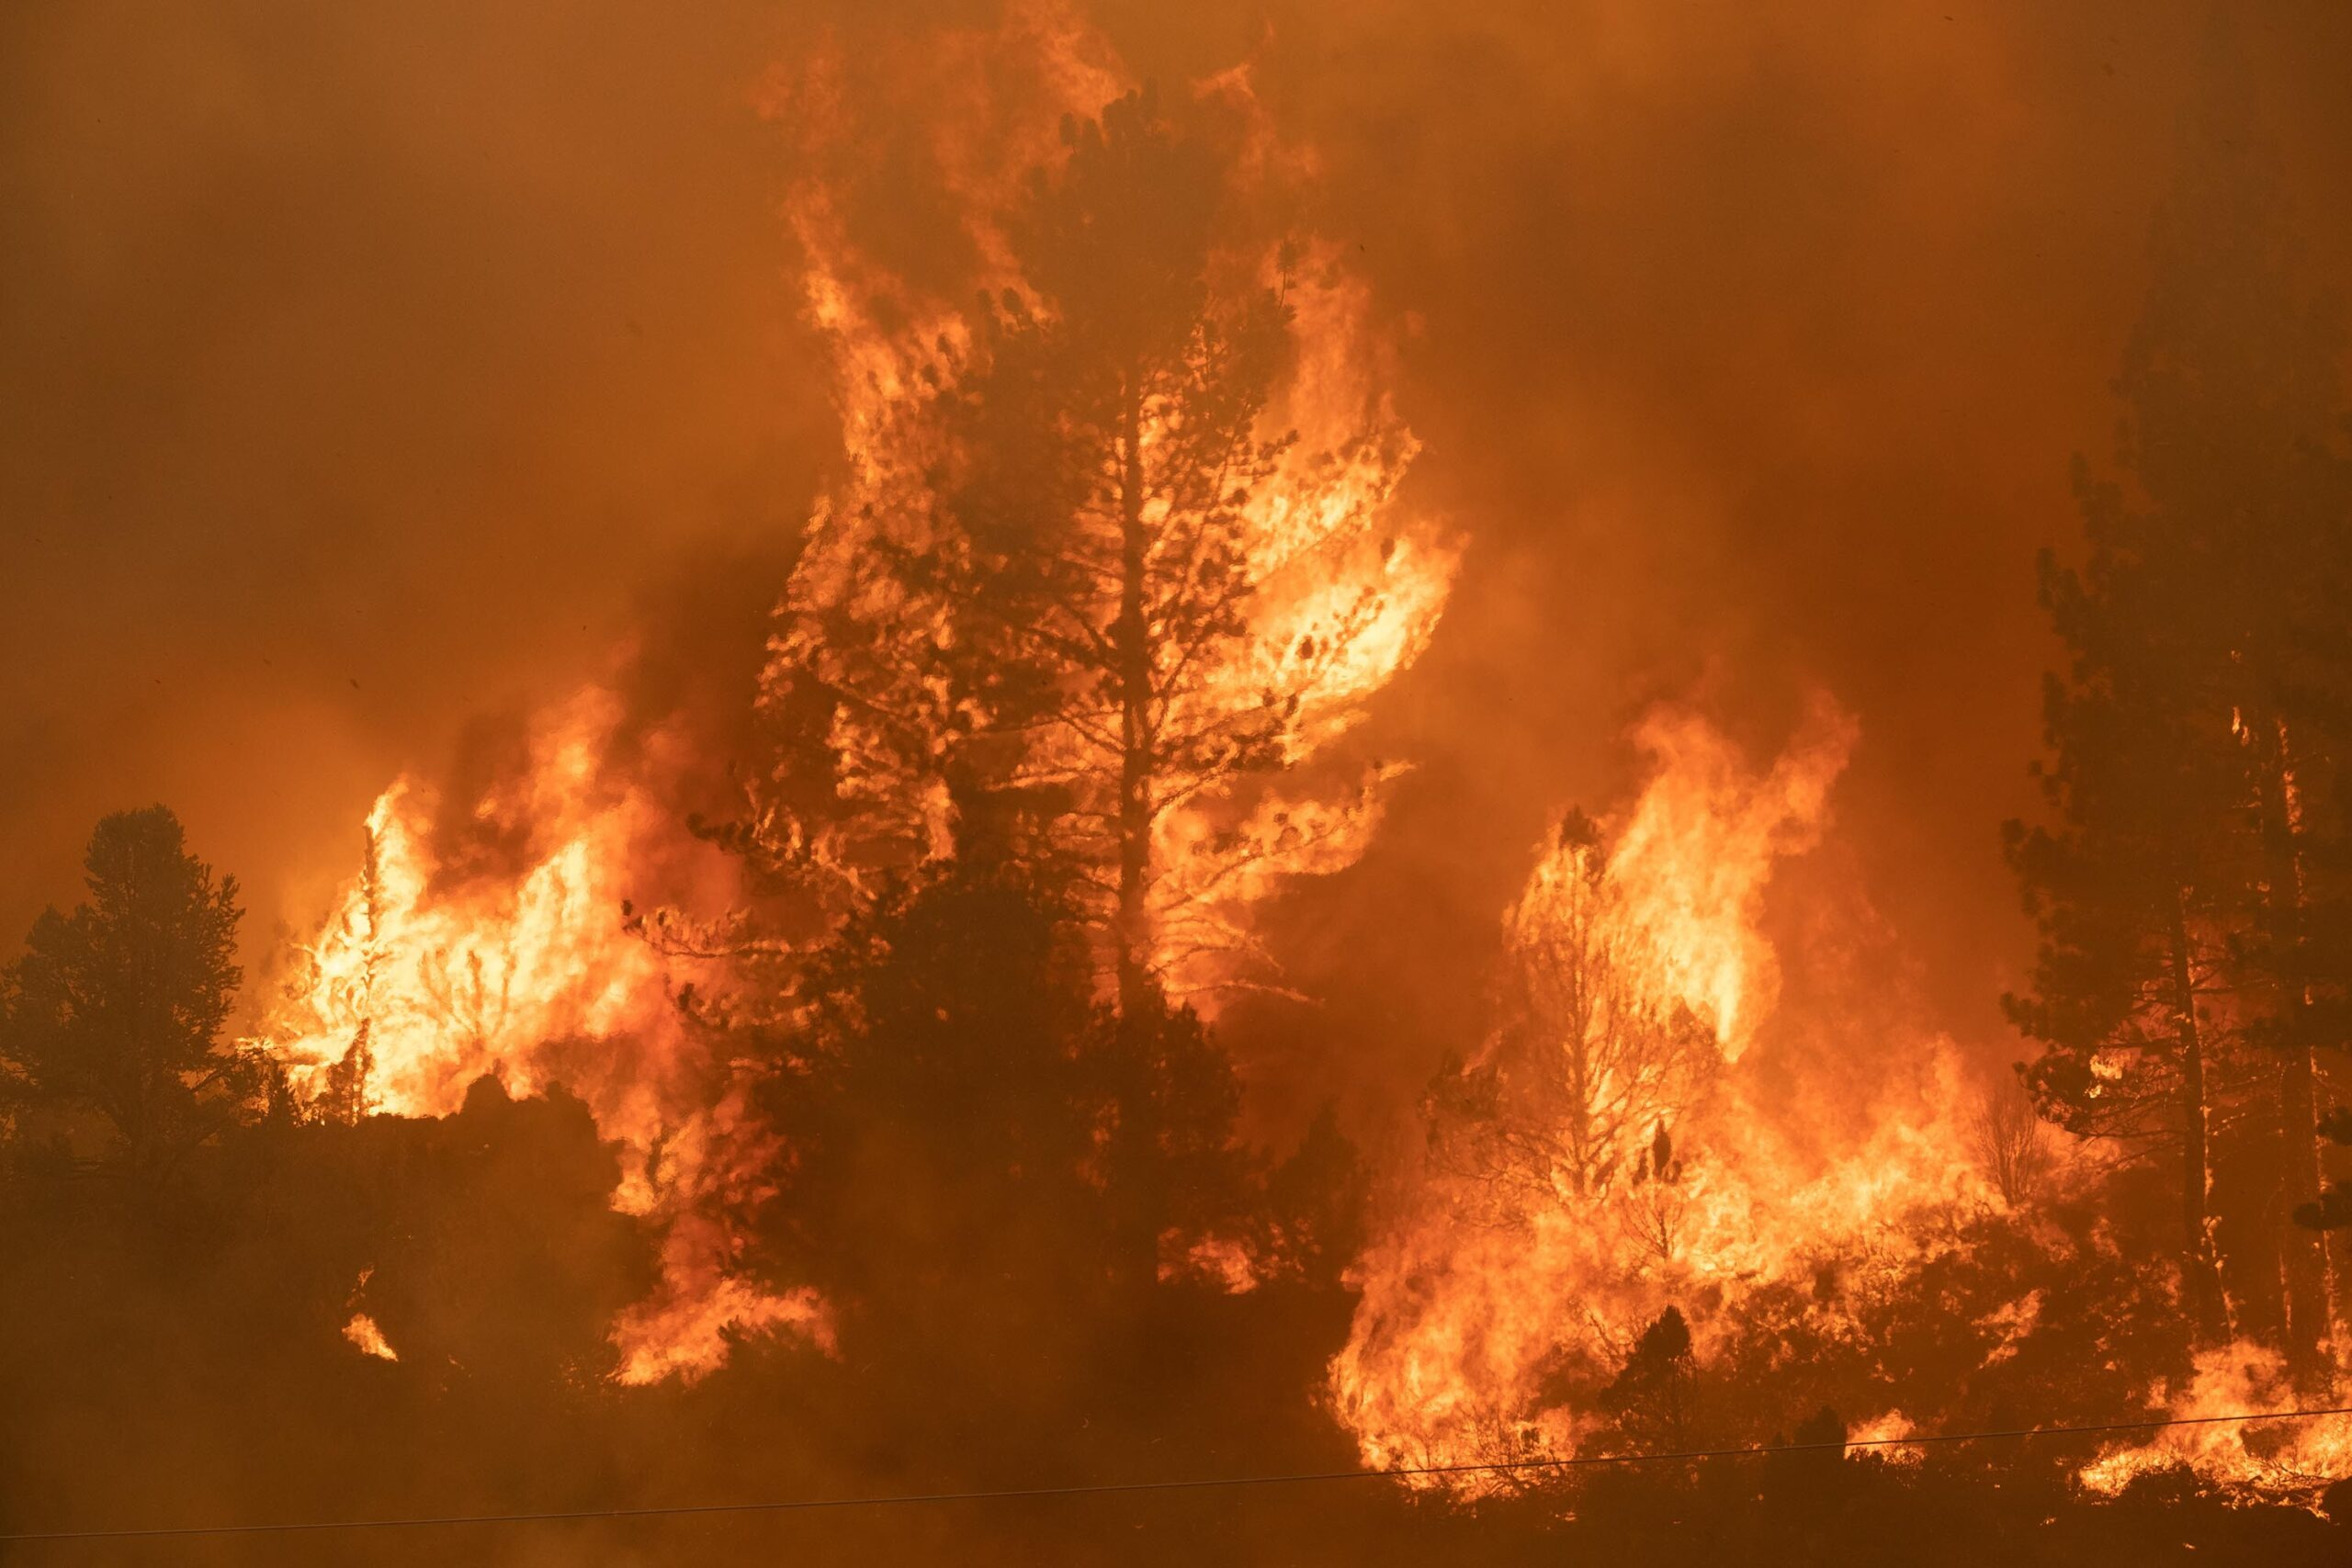 <i>David Odisho/Bloomberg/Getty Images</i><br/>Trees burn along Highway 89 during the Tamarack Fire in the Californian city of Markleeville on July 17.